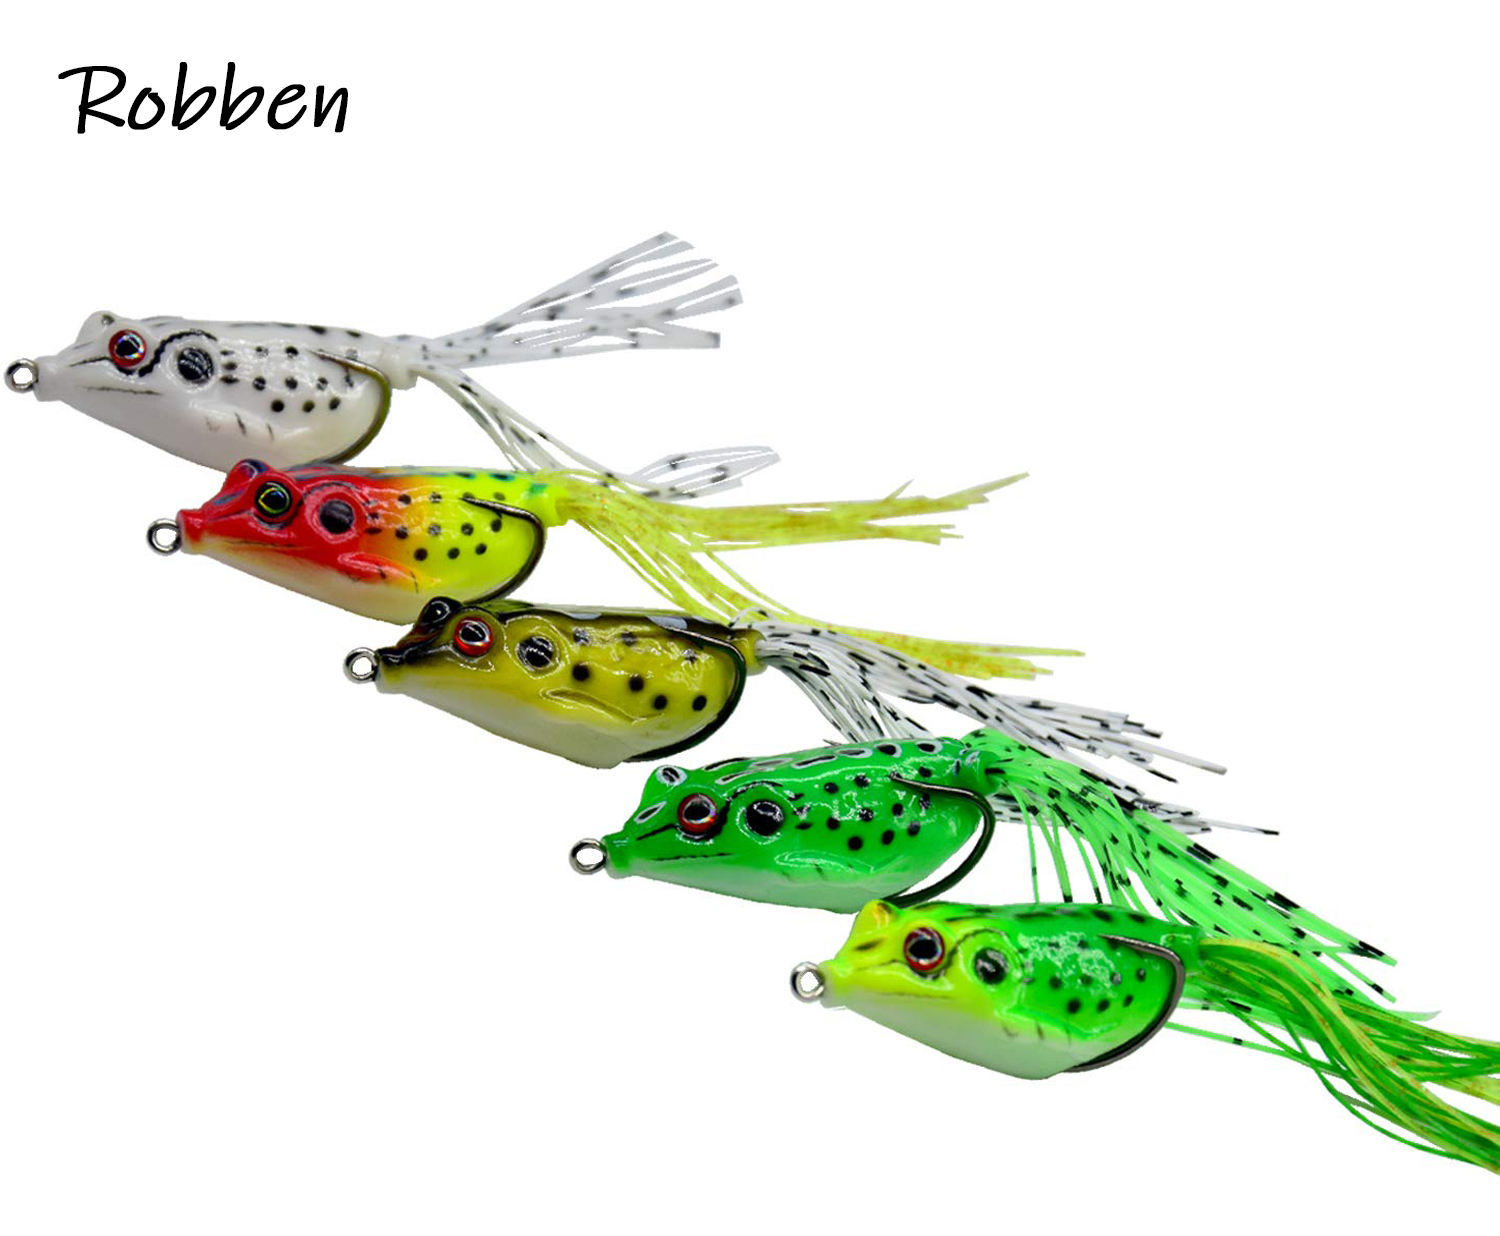 Robben 5g-15g Soft Bait Japan Plastic Frog Soft Fishing Lures double Hooks Topwater Ray Frog 4CM-6CM Artificial Soft Bait